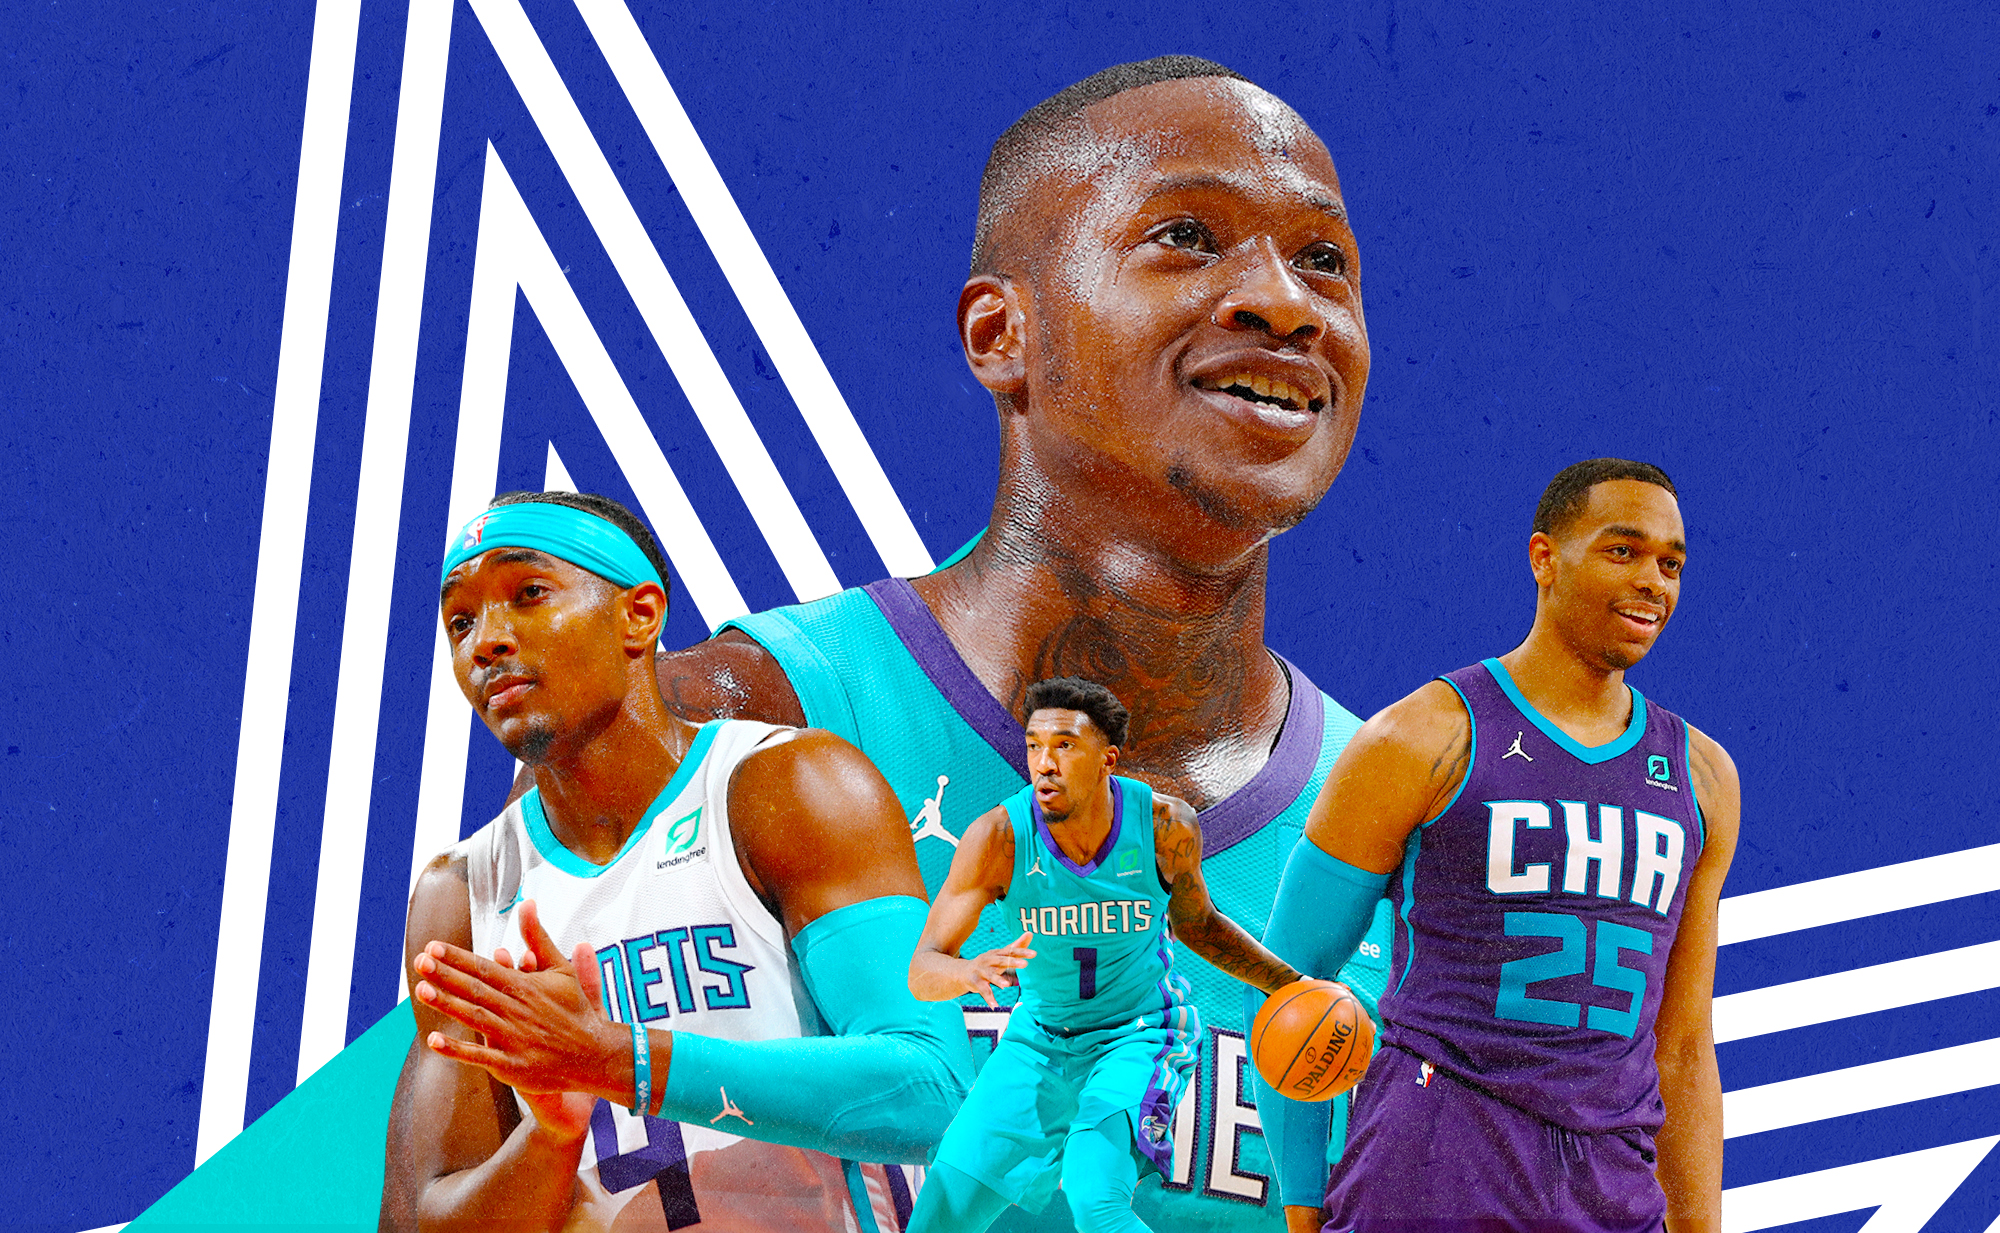 The Hornets are fun and not the trainwreck we were expecting